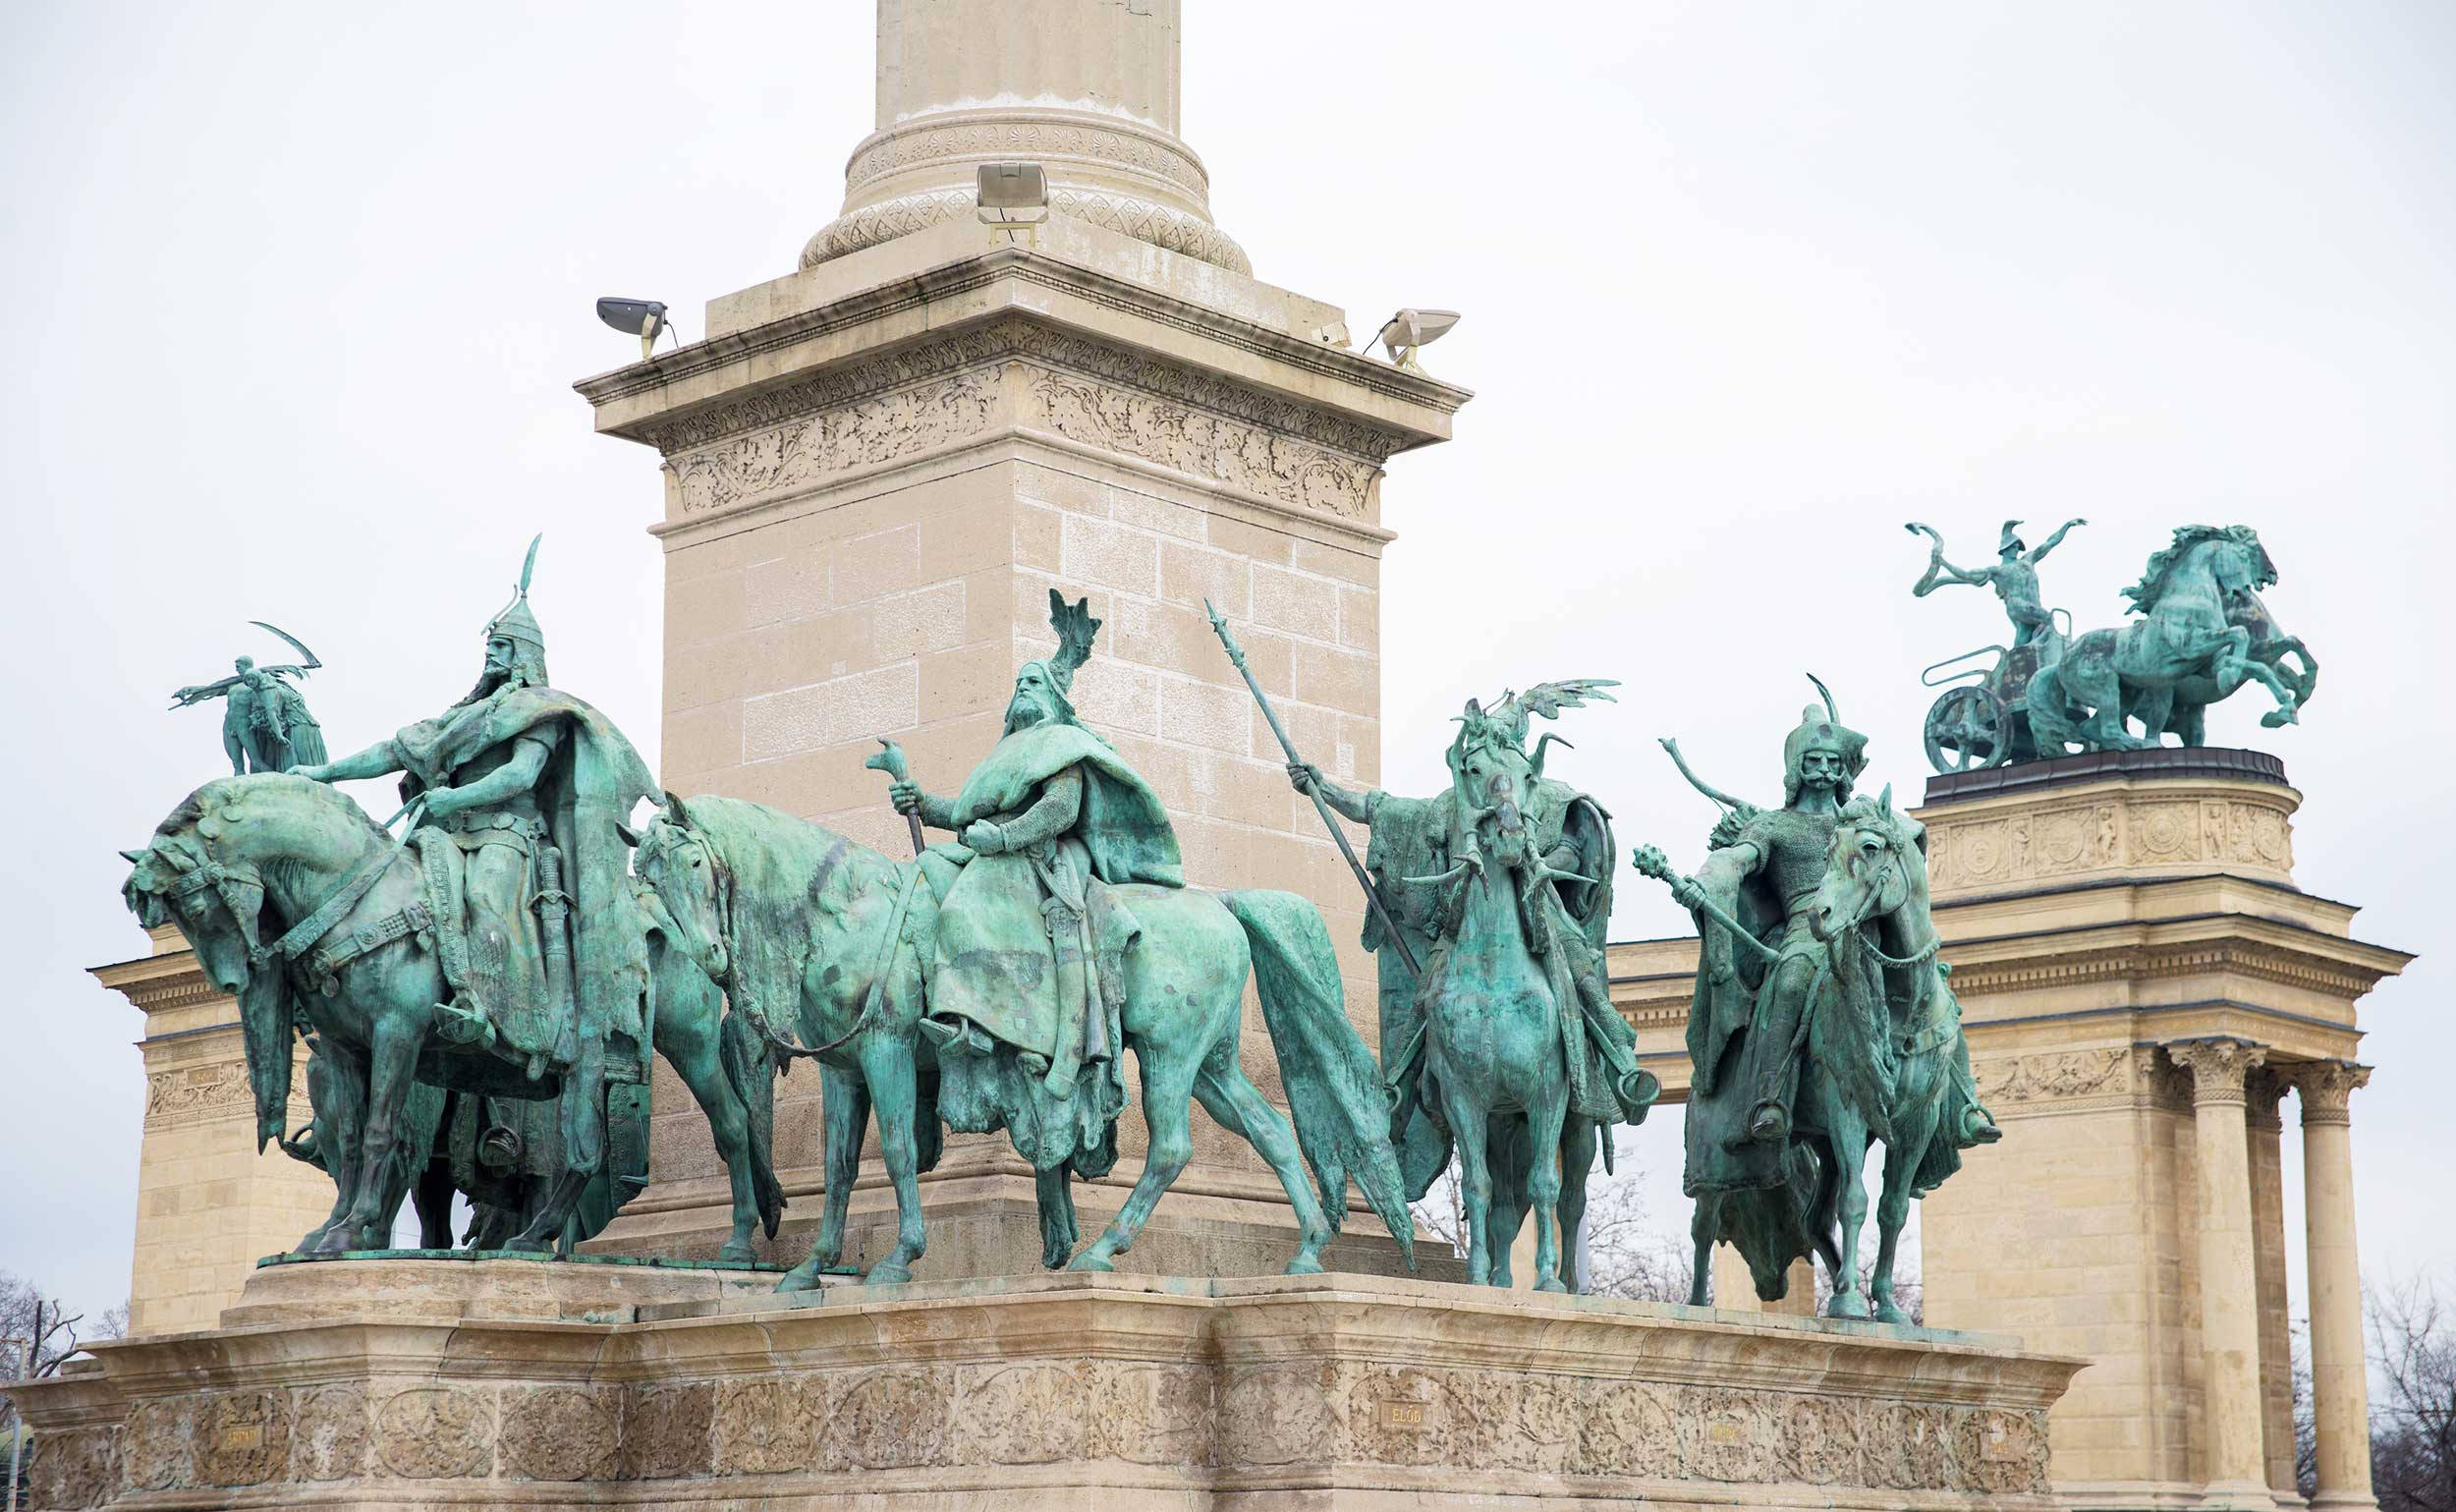 Green patinaed horsemen carrying spears around the base of an obelisk, Budapest